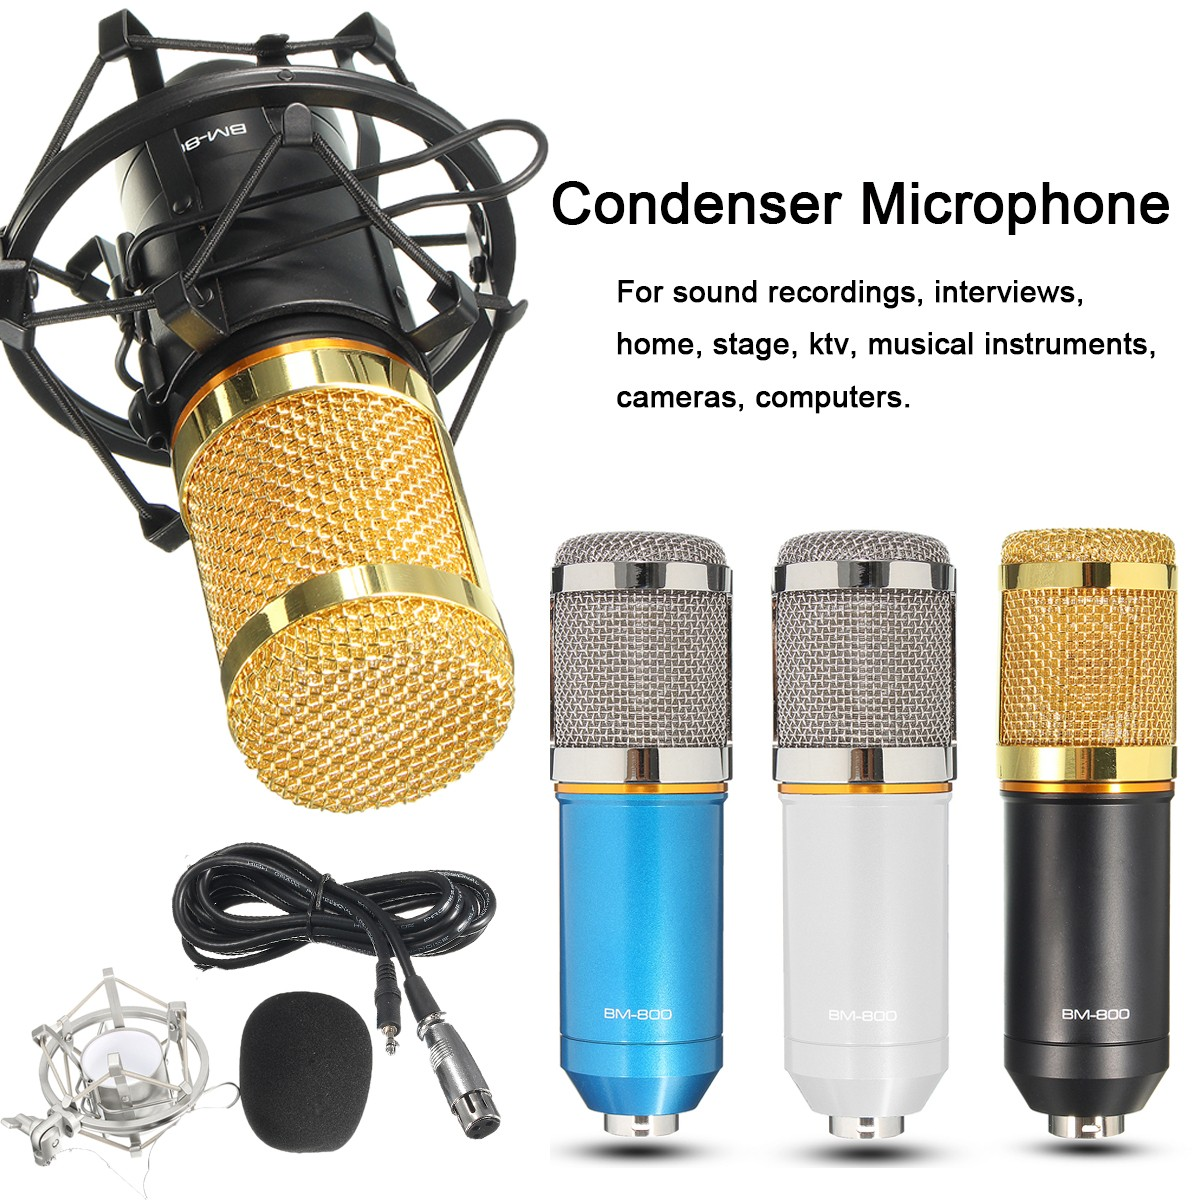 BM-800 Pro Condenser Microphone Studio Kit Studio Recording Microphone with Shock Mount Holder, Audio Cable, BOP cover